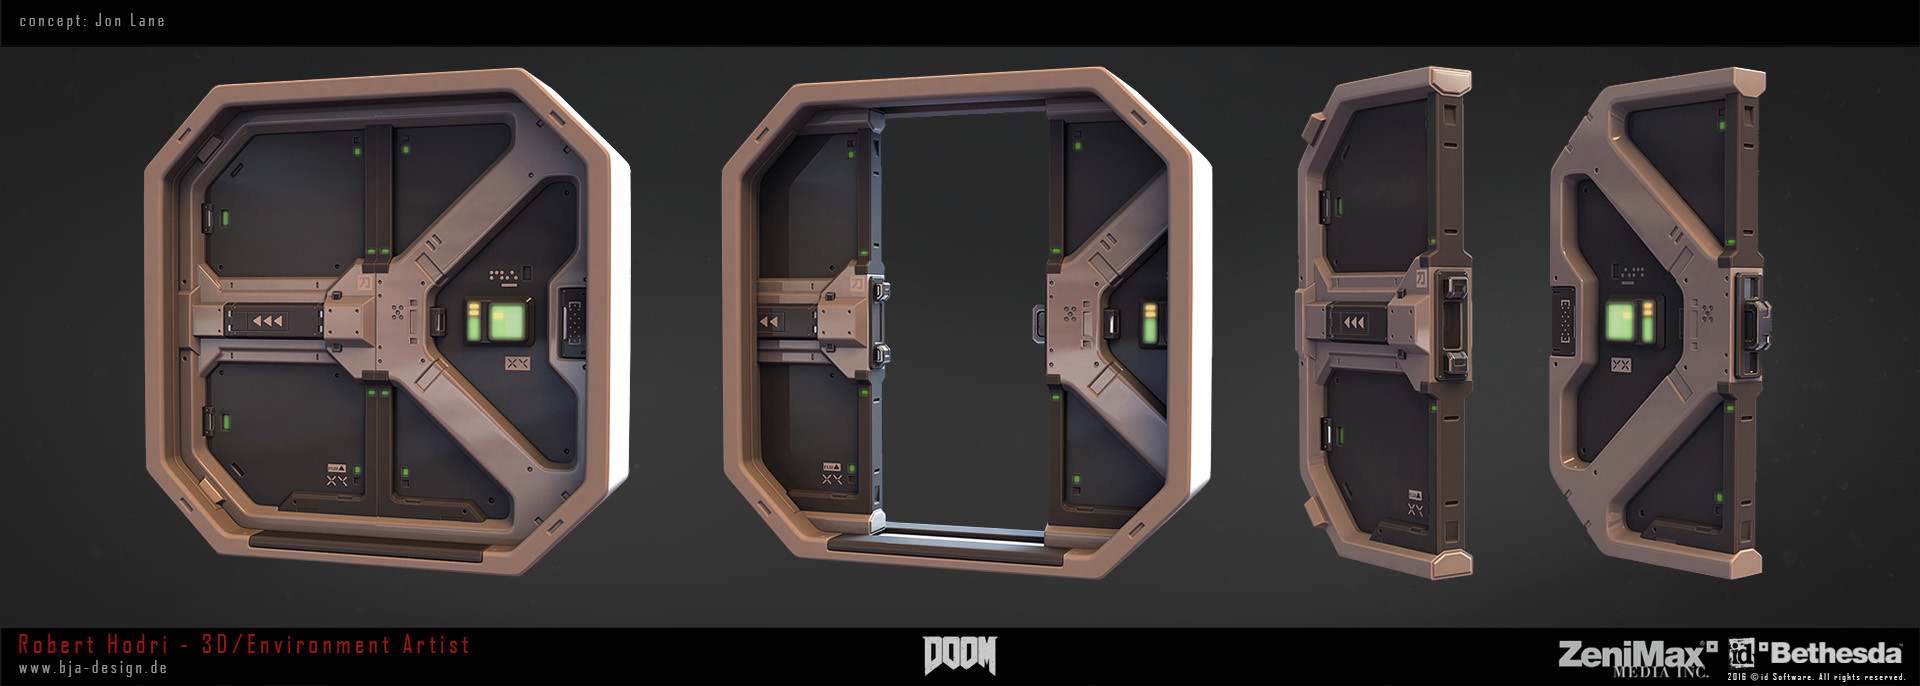 how to open doors in doom